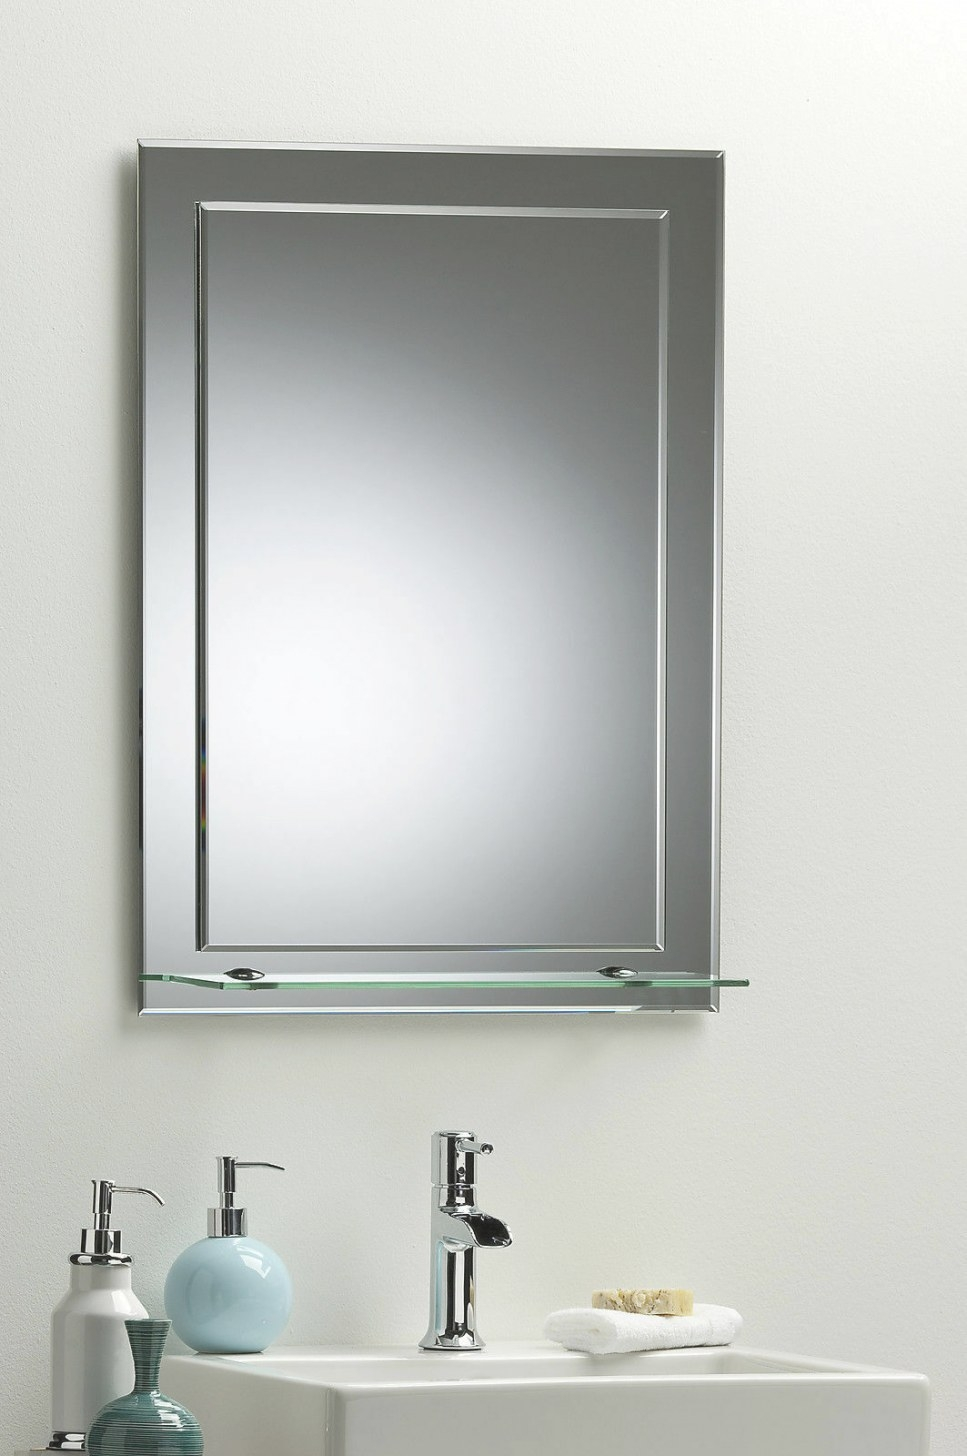 Bathroom Mirror Elegant Rectangular W/ Shelf 70Cm X 50Cm with Rectangular Mirrors For Bathroom